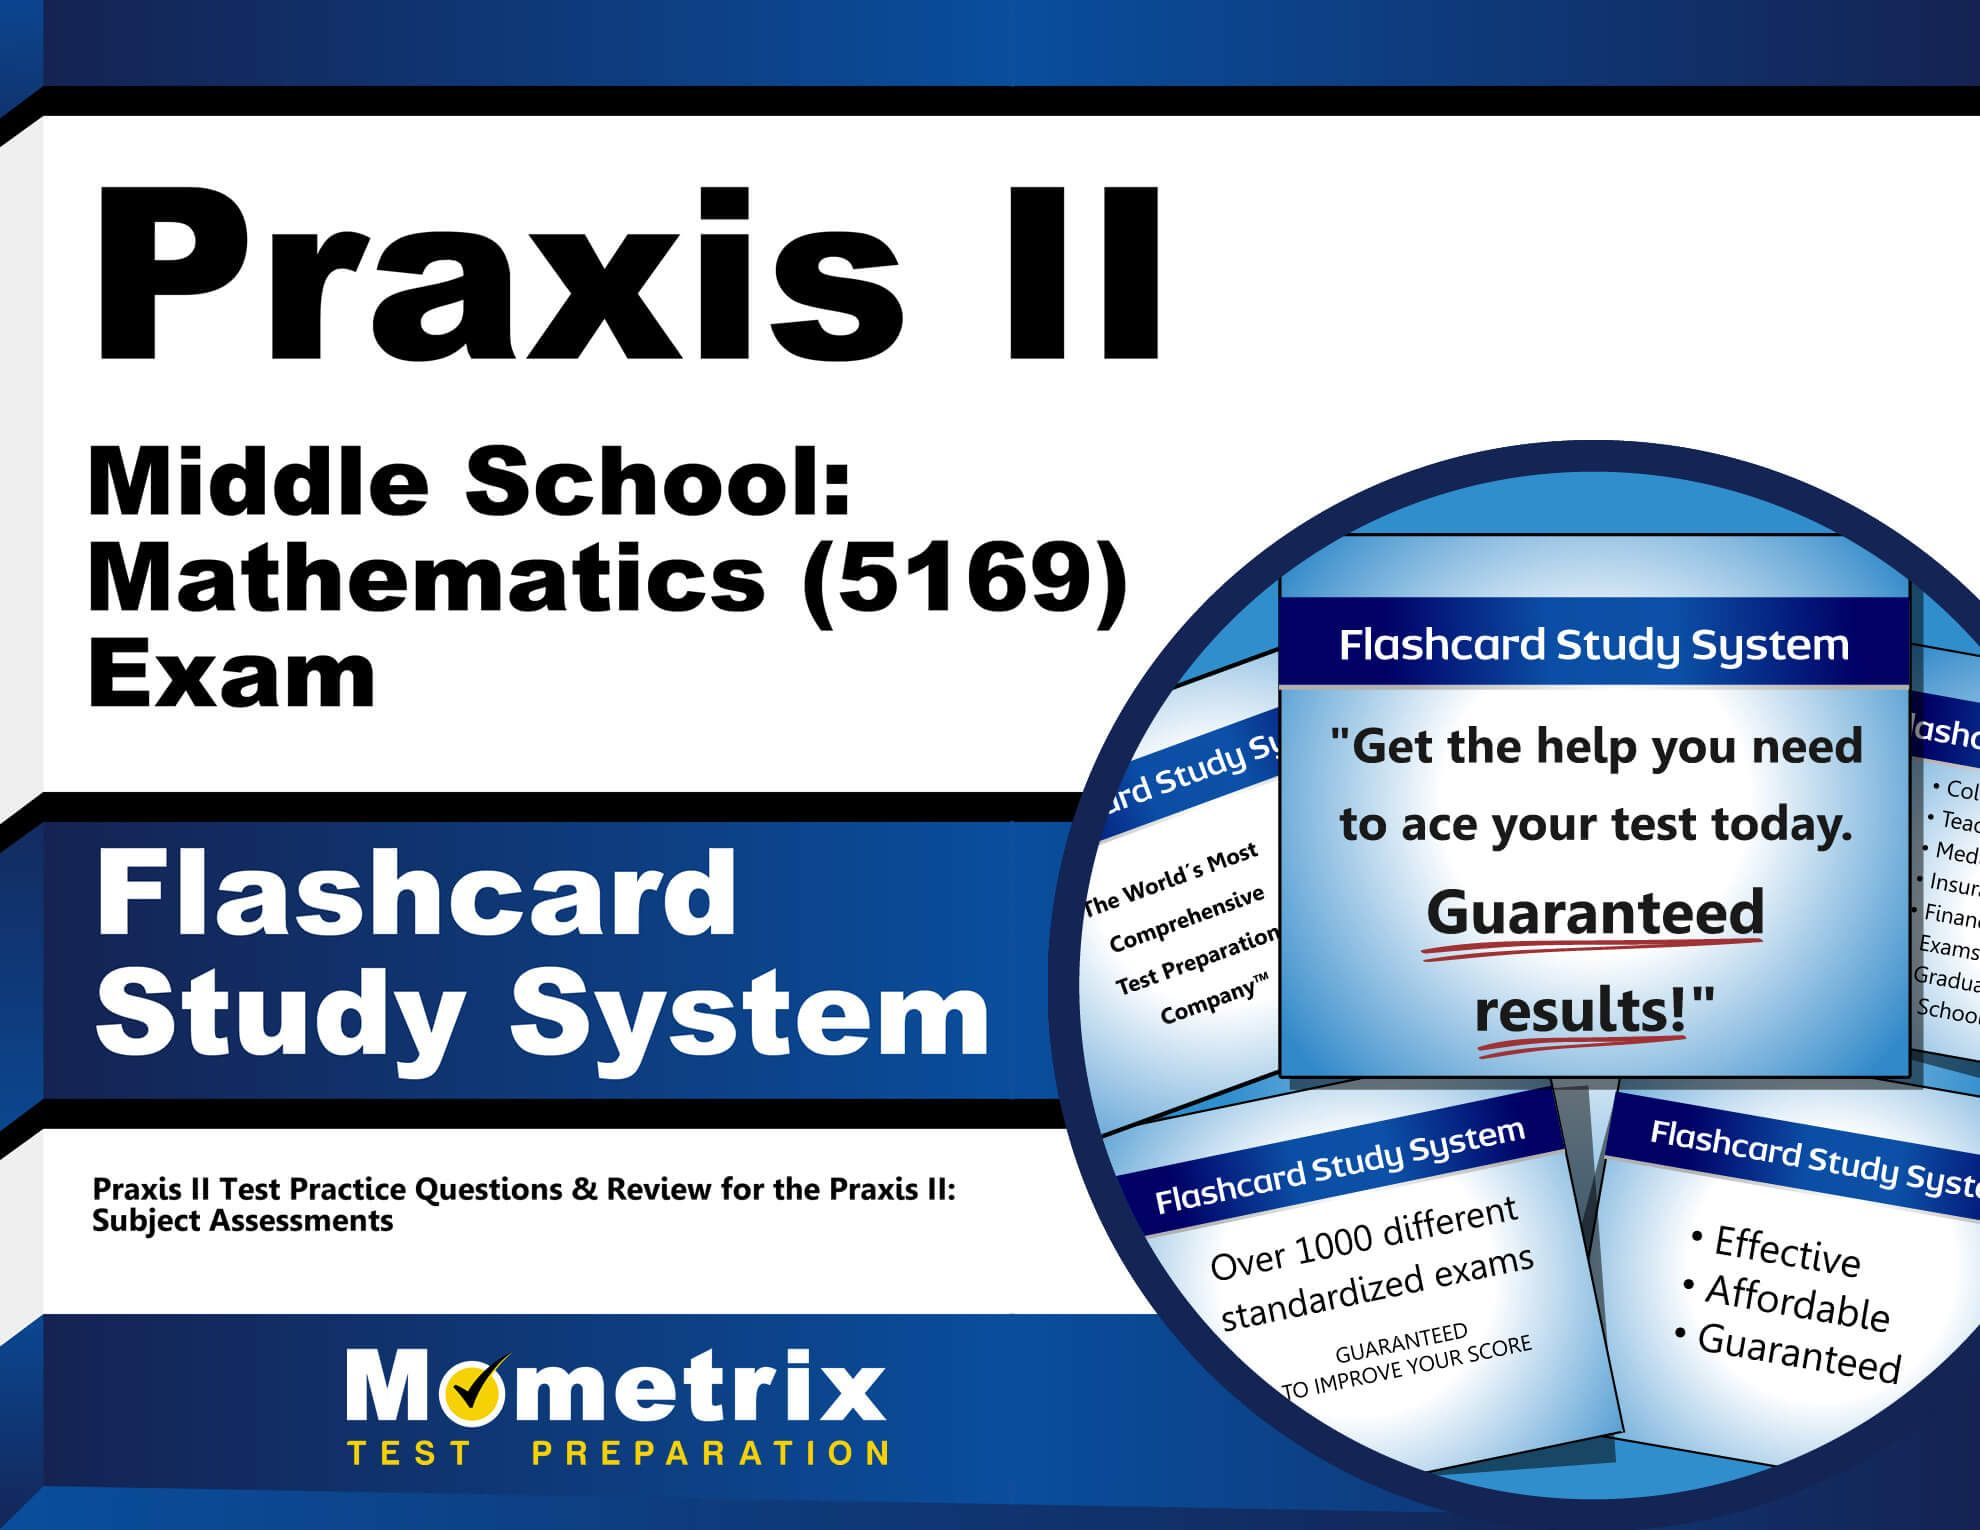 Best free praxis ii middle school mathematics practice test free cardiacvascular nurse test prep to help you pass your cardiacvascular nurse exam the cardiacvascular nurse certification indicates a specialized 1betcityfo Image collections